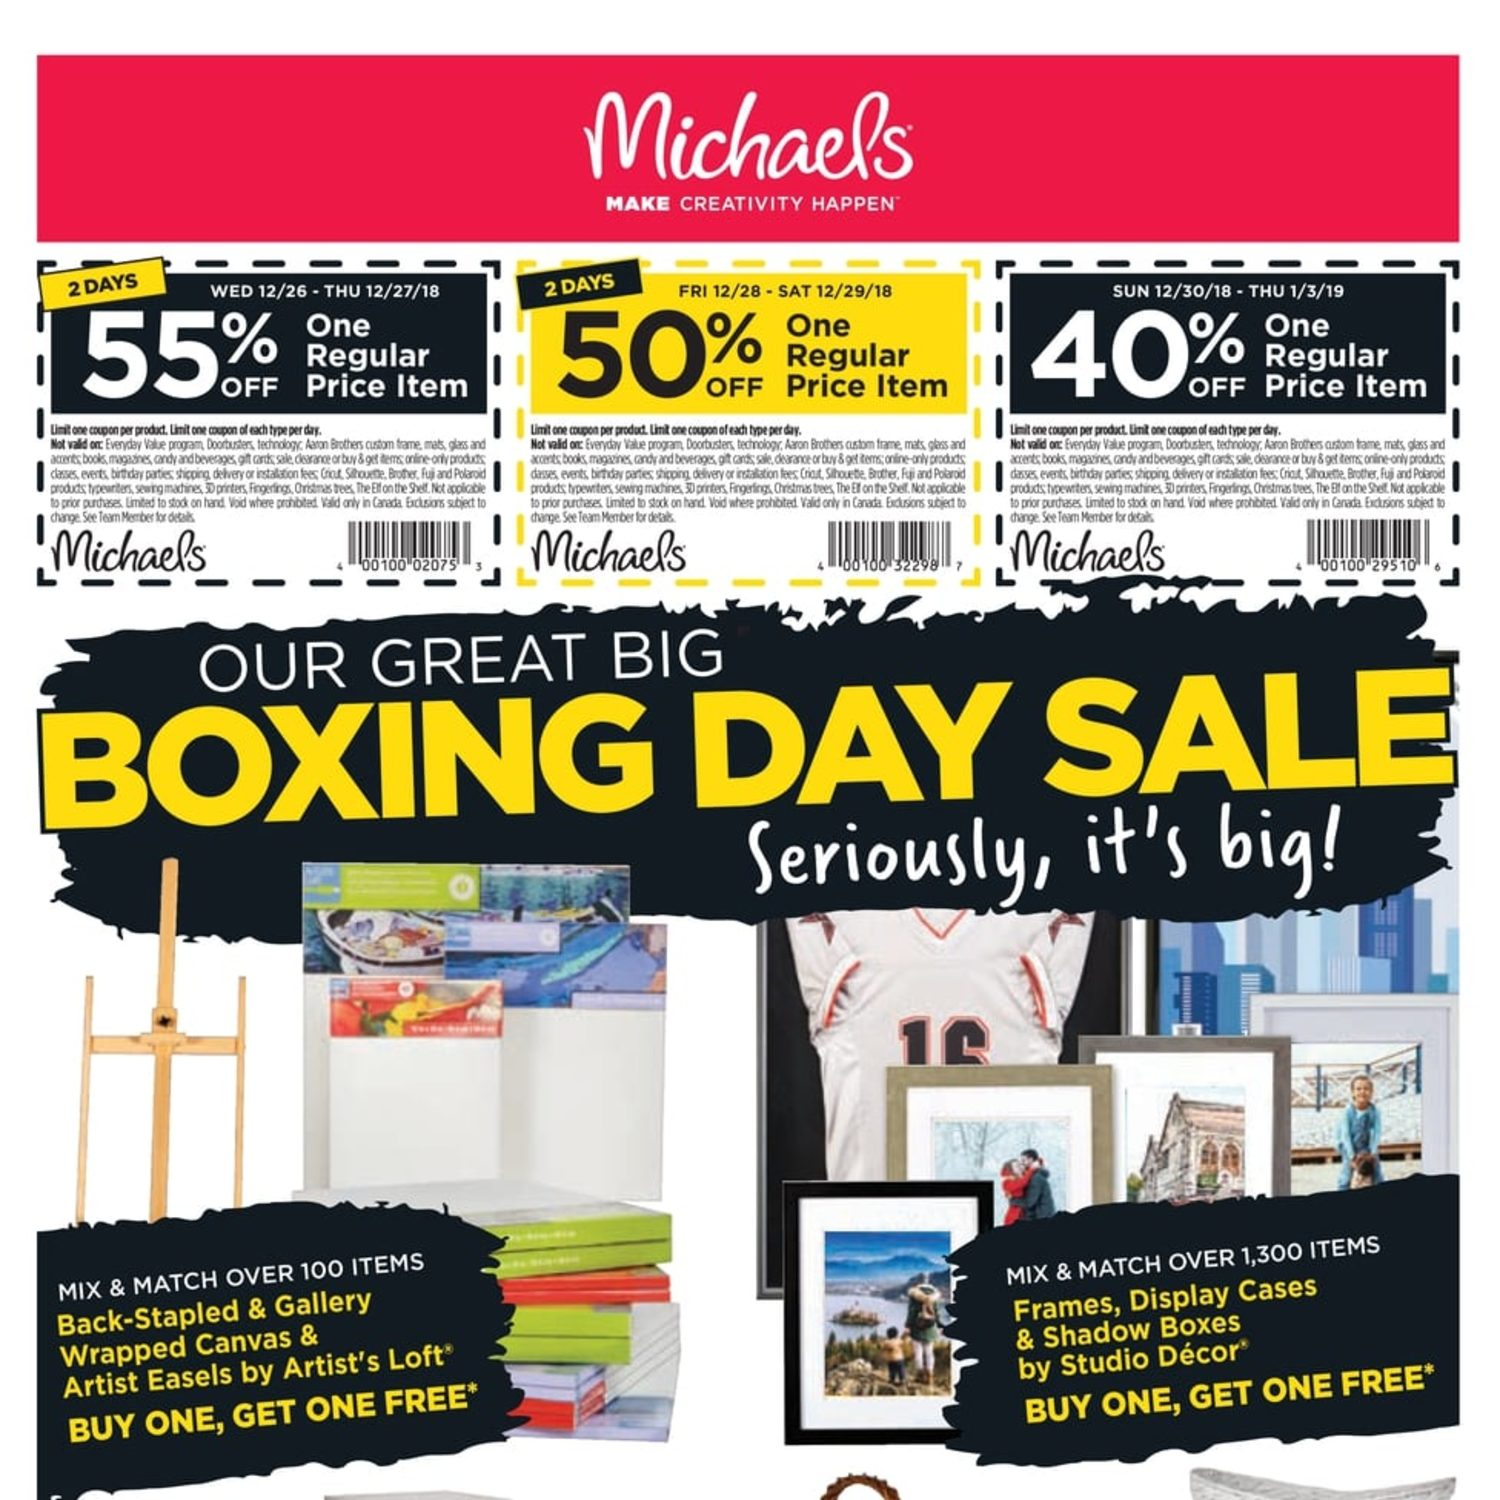 Michaels Weekly Flyer - Our Great Big Boxing Day Sale - Dec